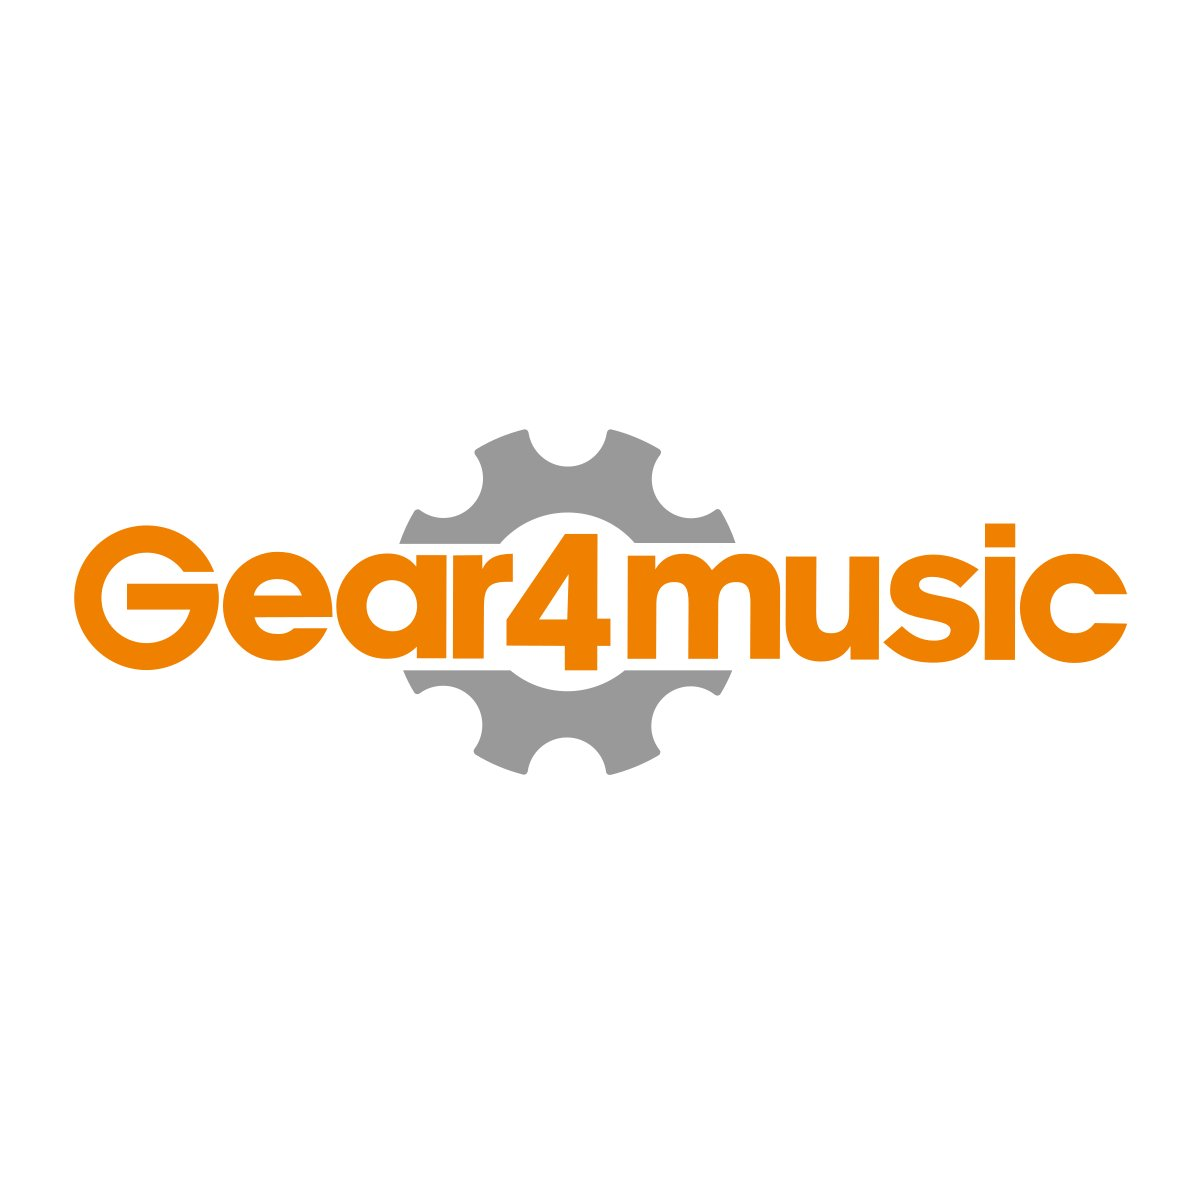 Flauto intermedio Rosedale Gear4music   confezione accessori